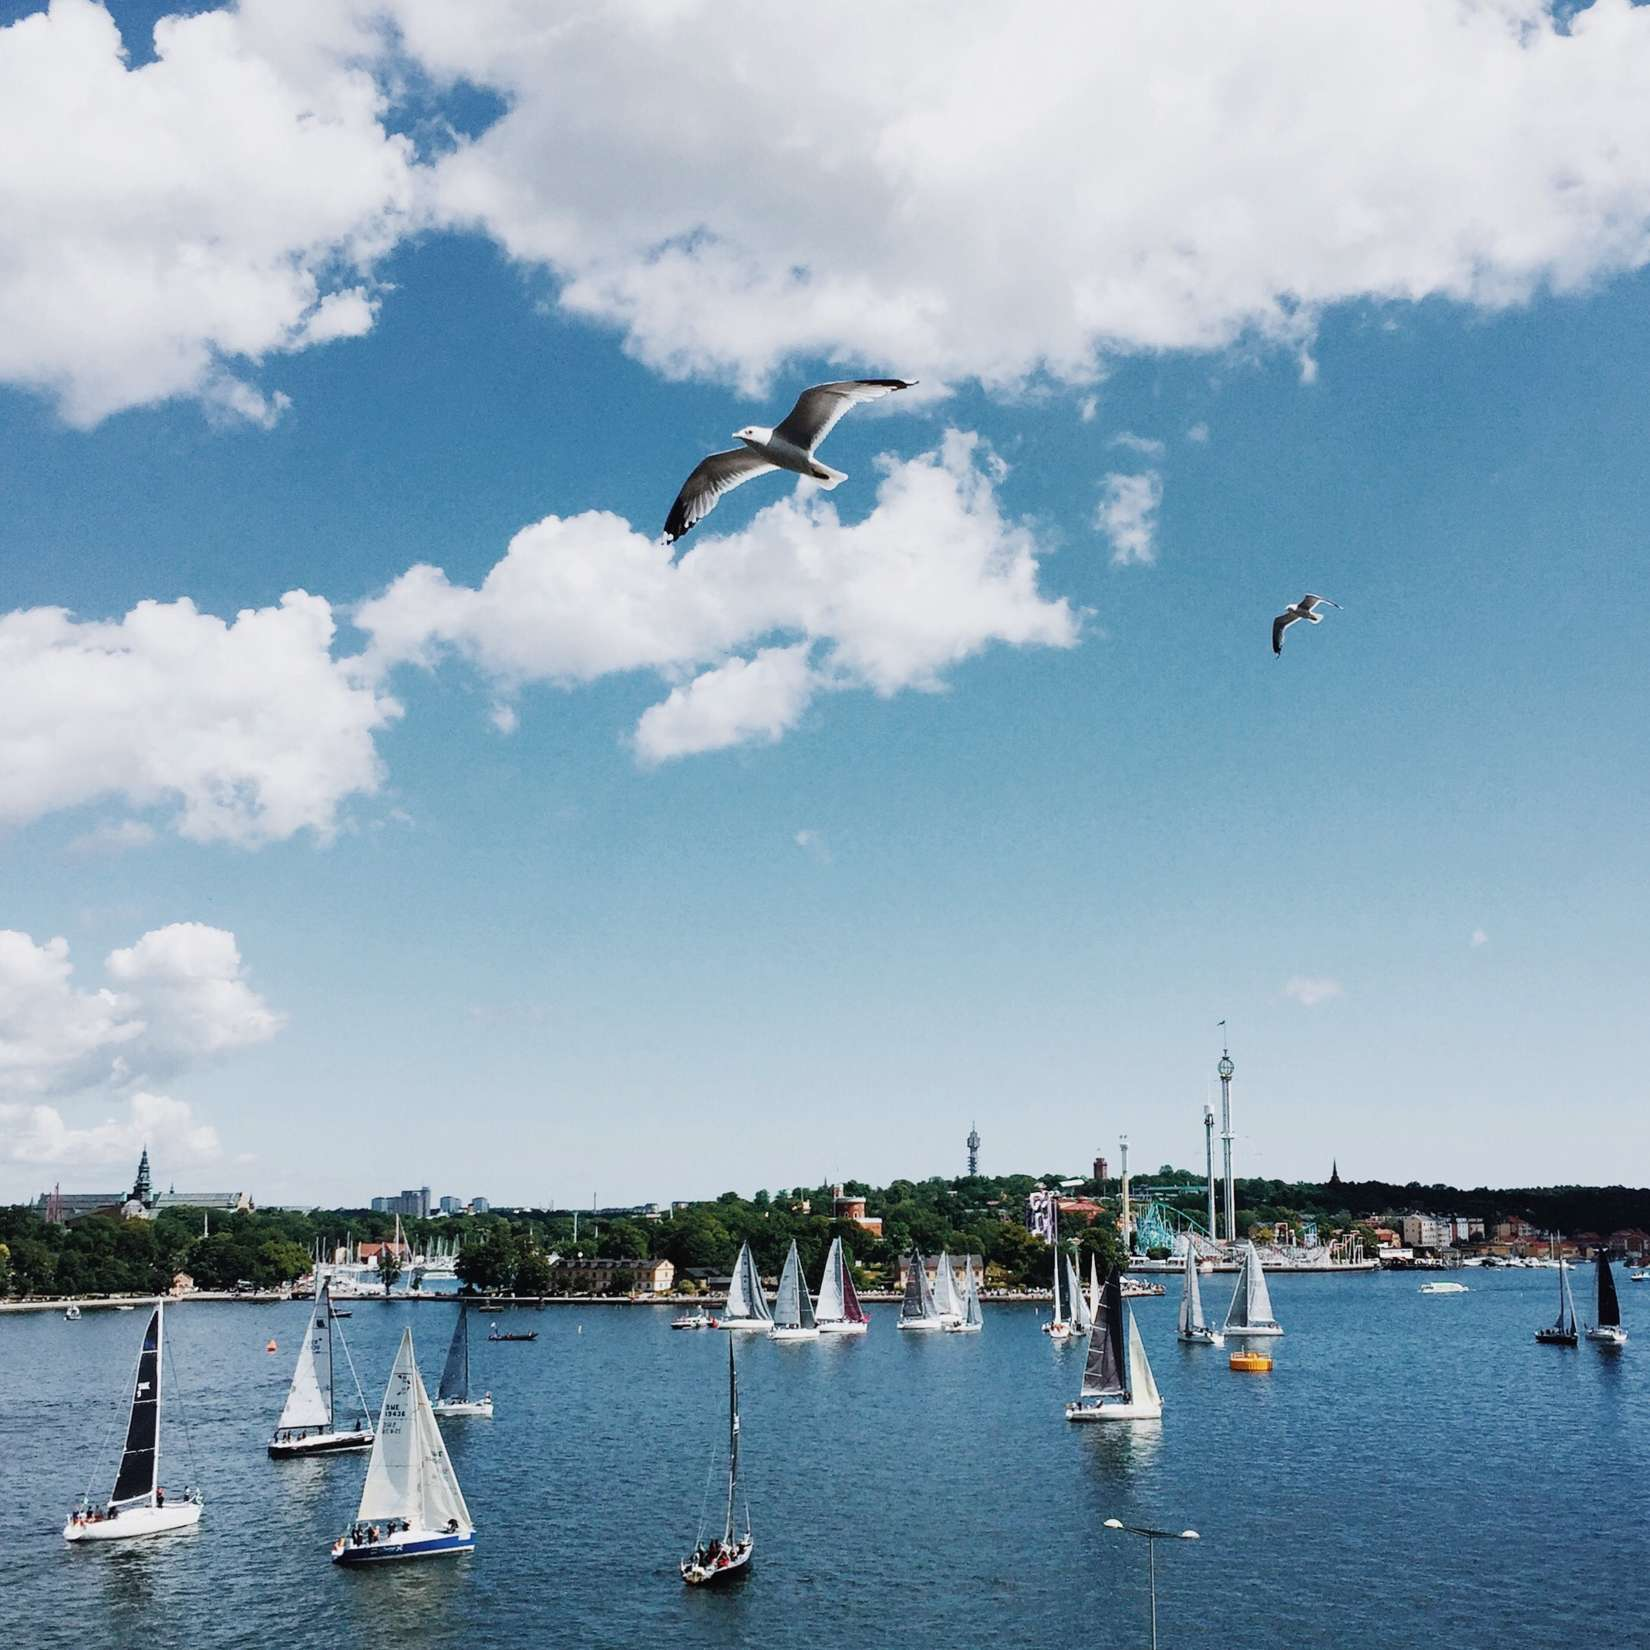 Boat race Stockholm: 5 TIPS FOR RELOCATING A NEW HIRE TO SWEDEN THIS SUMMER